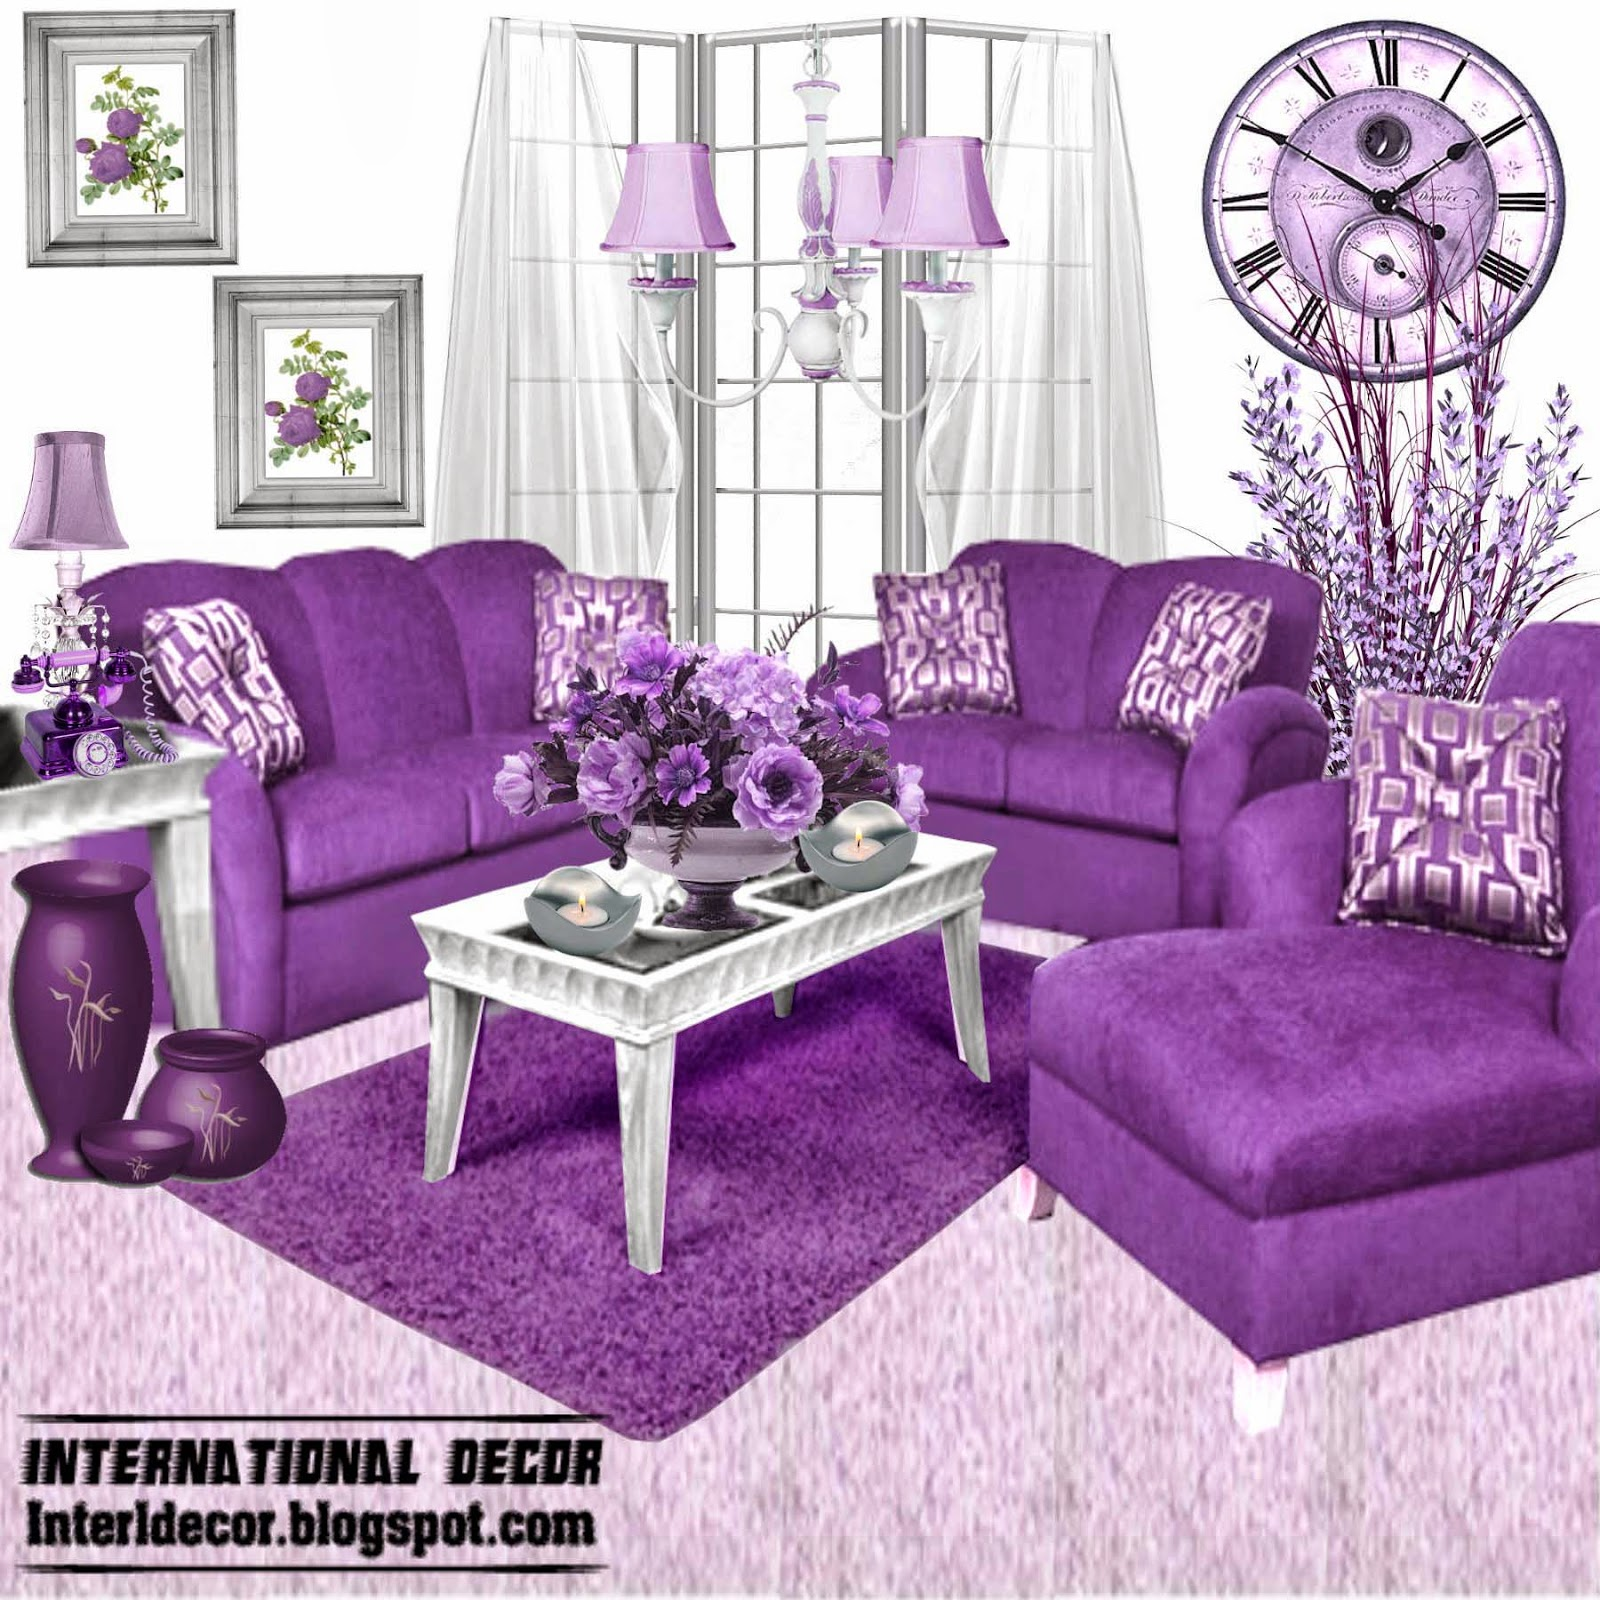 Luxury purple furniture sets sofas chairs for living room interior designs - Furniture design in living room ...